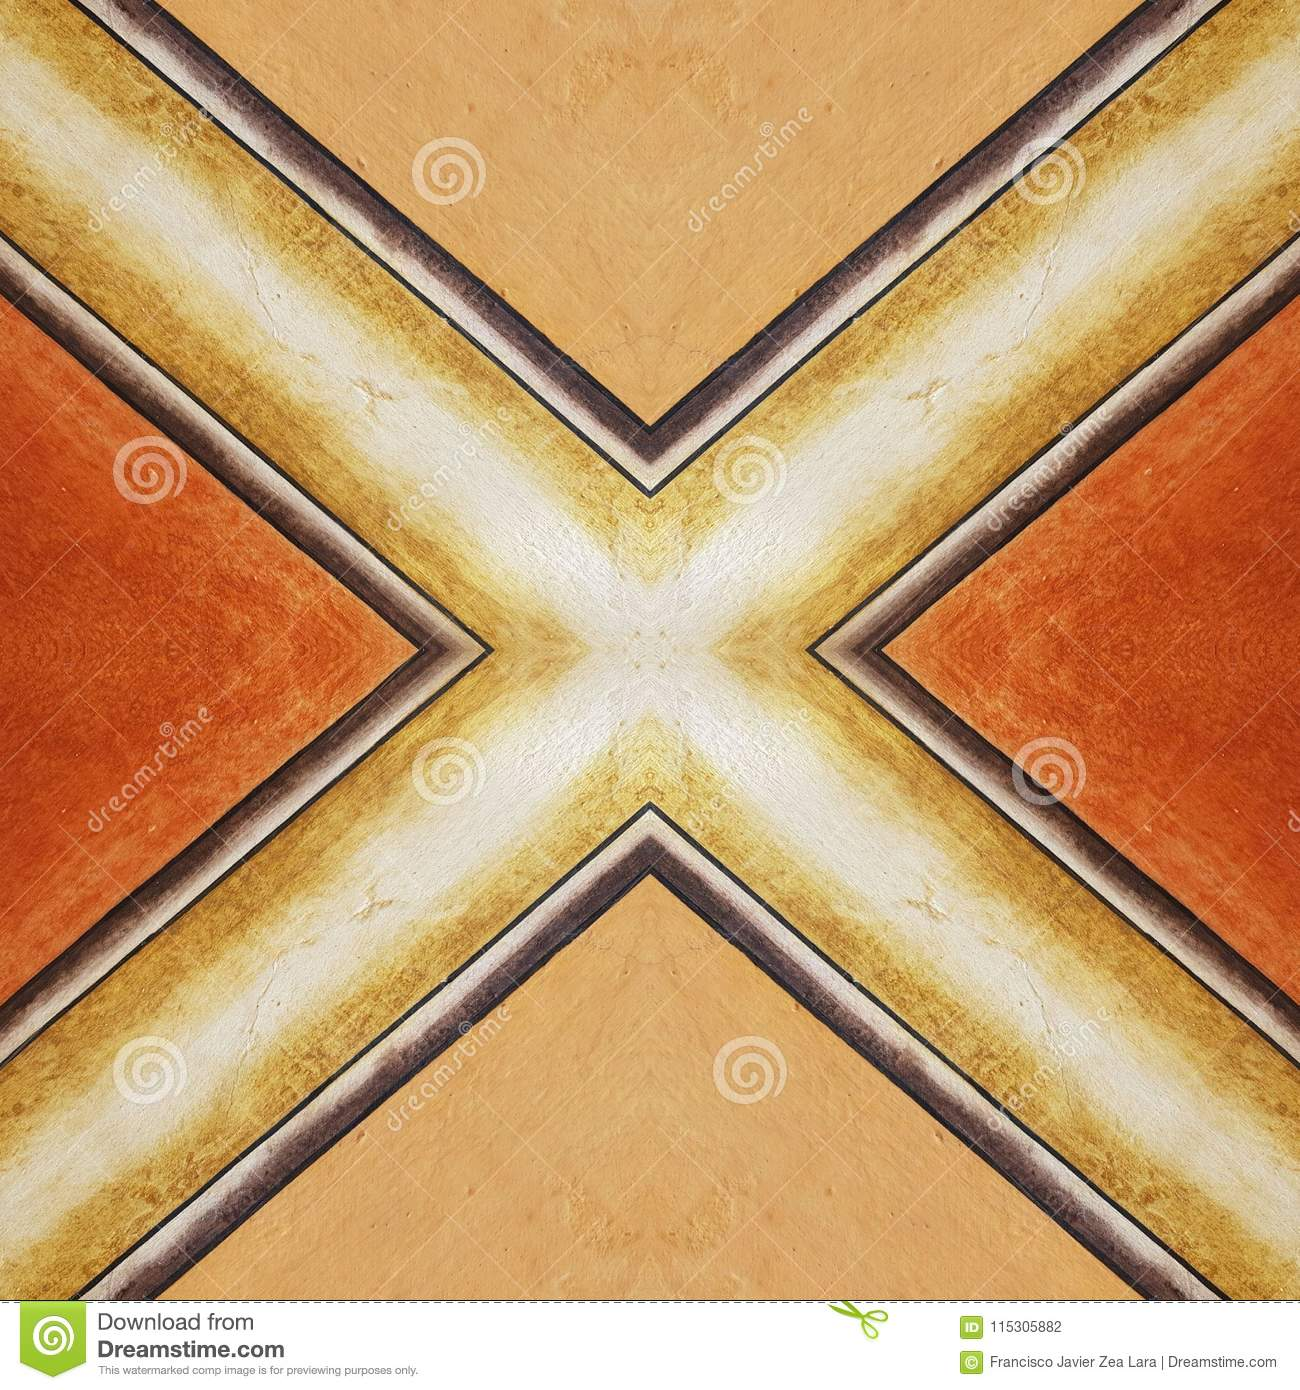 Abstract Design For Walls And Floors With Old-style, In Orange And ...